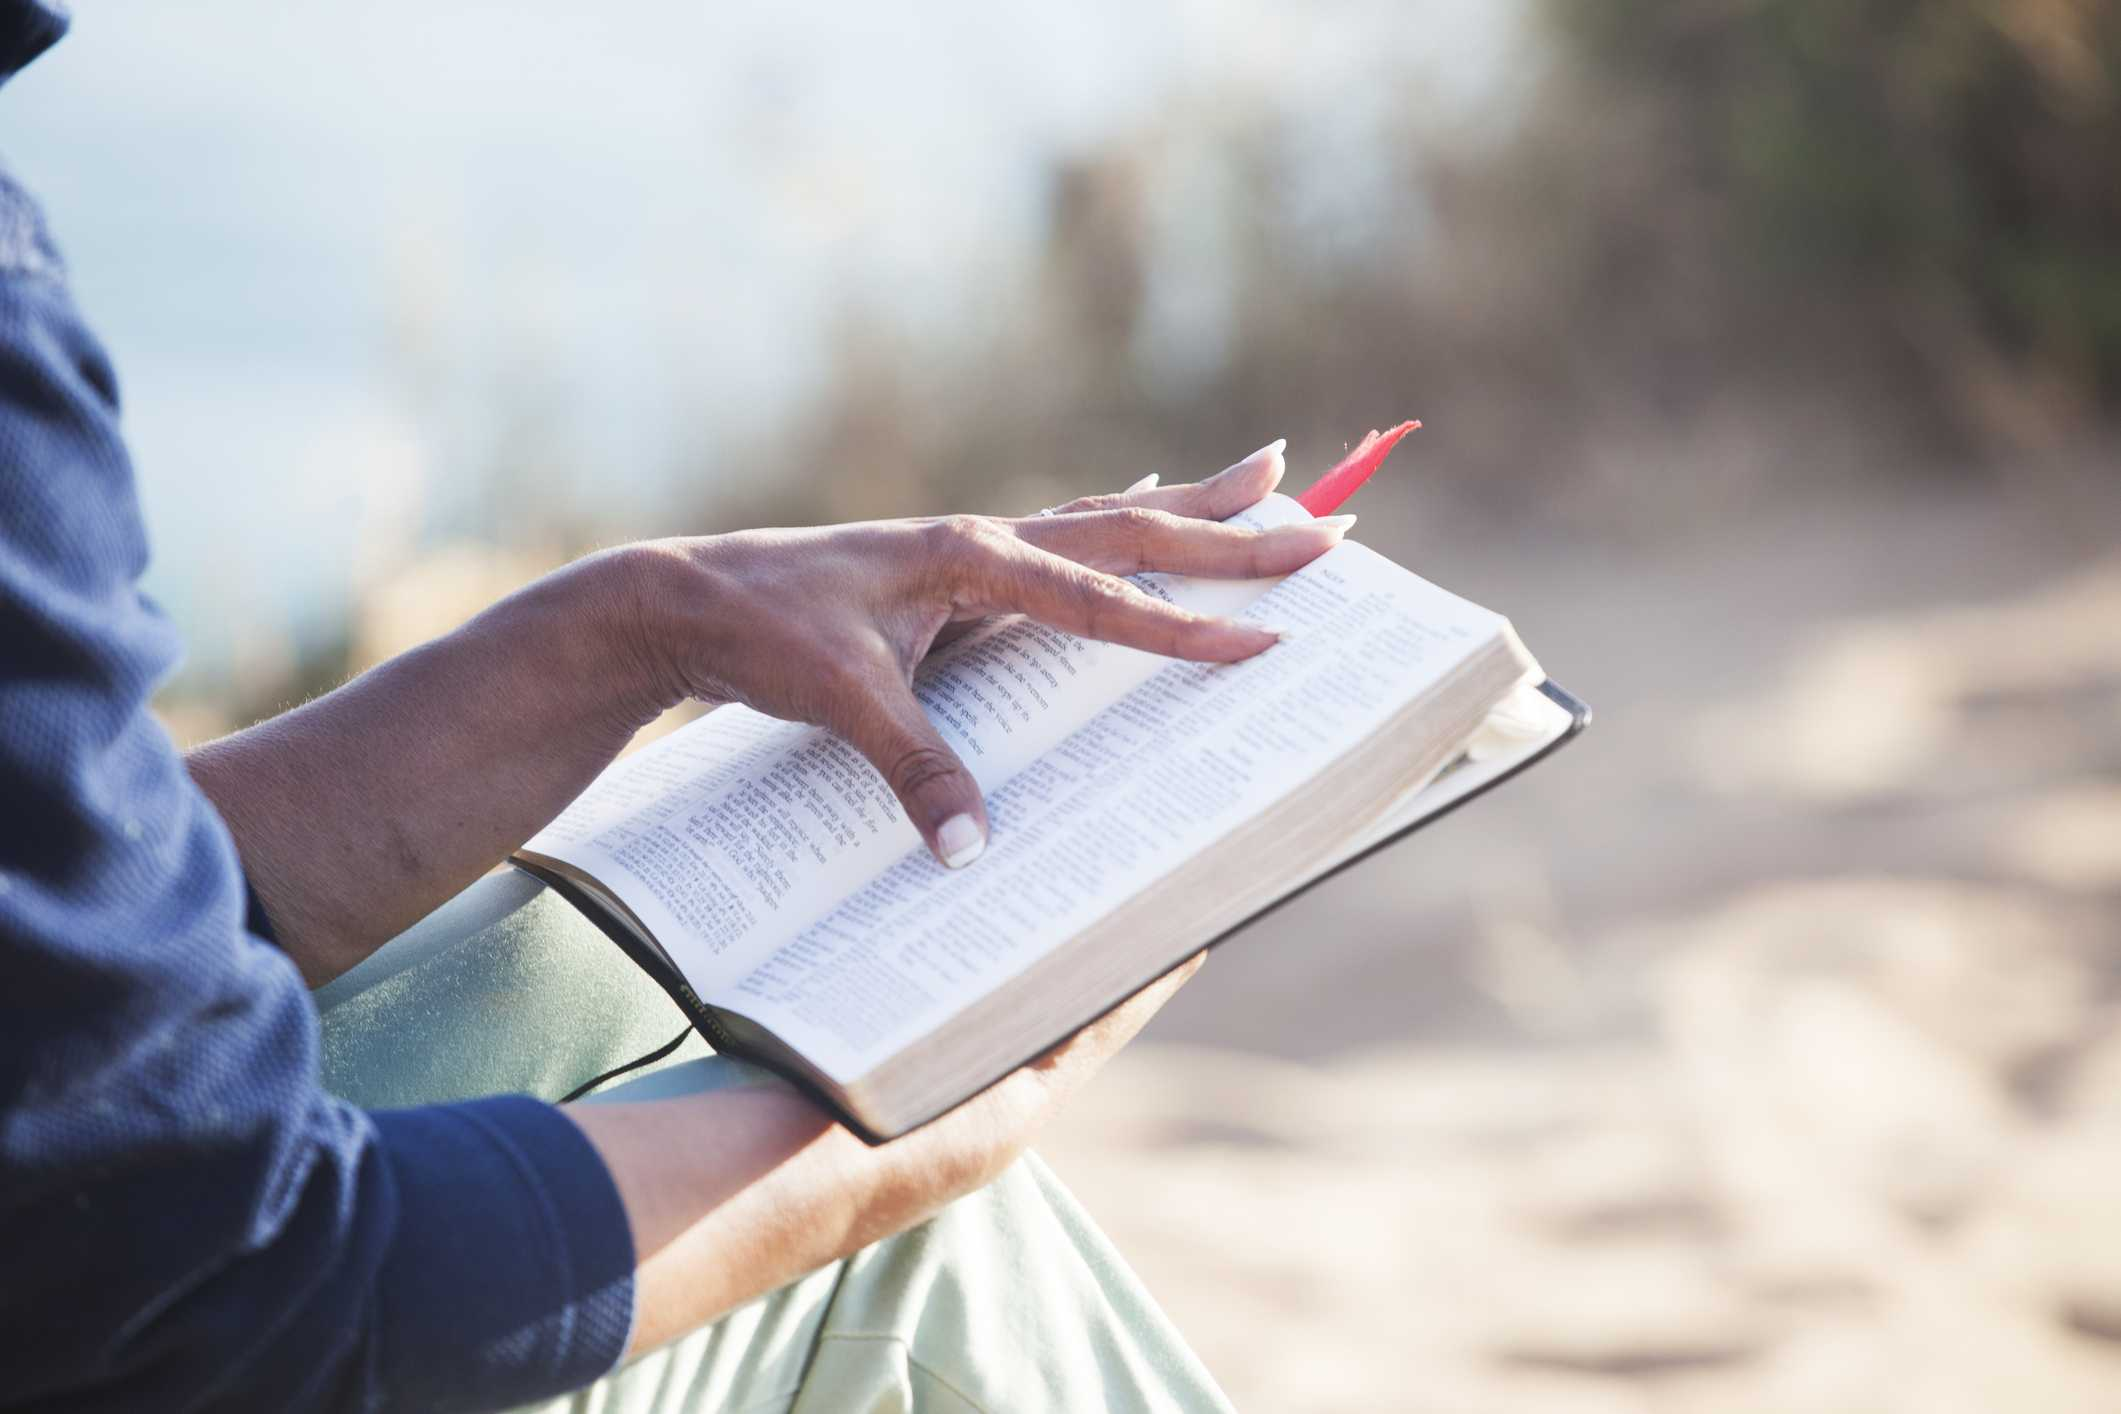 Does you life reflect God's Word